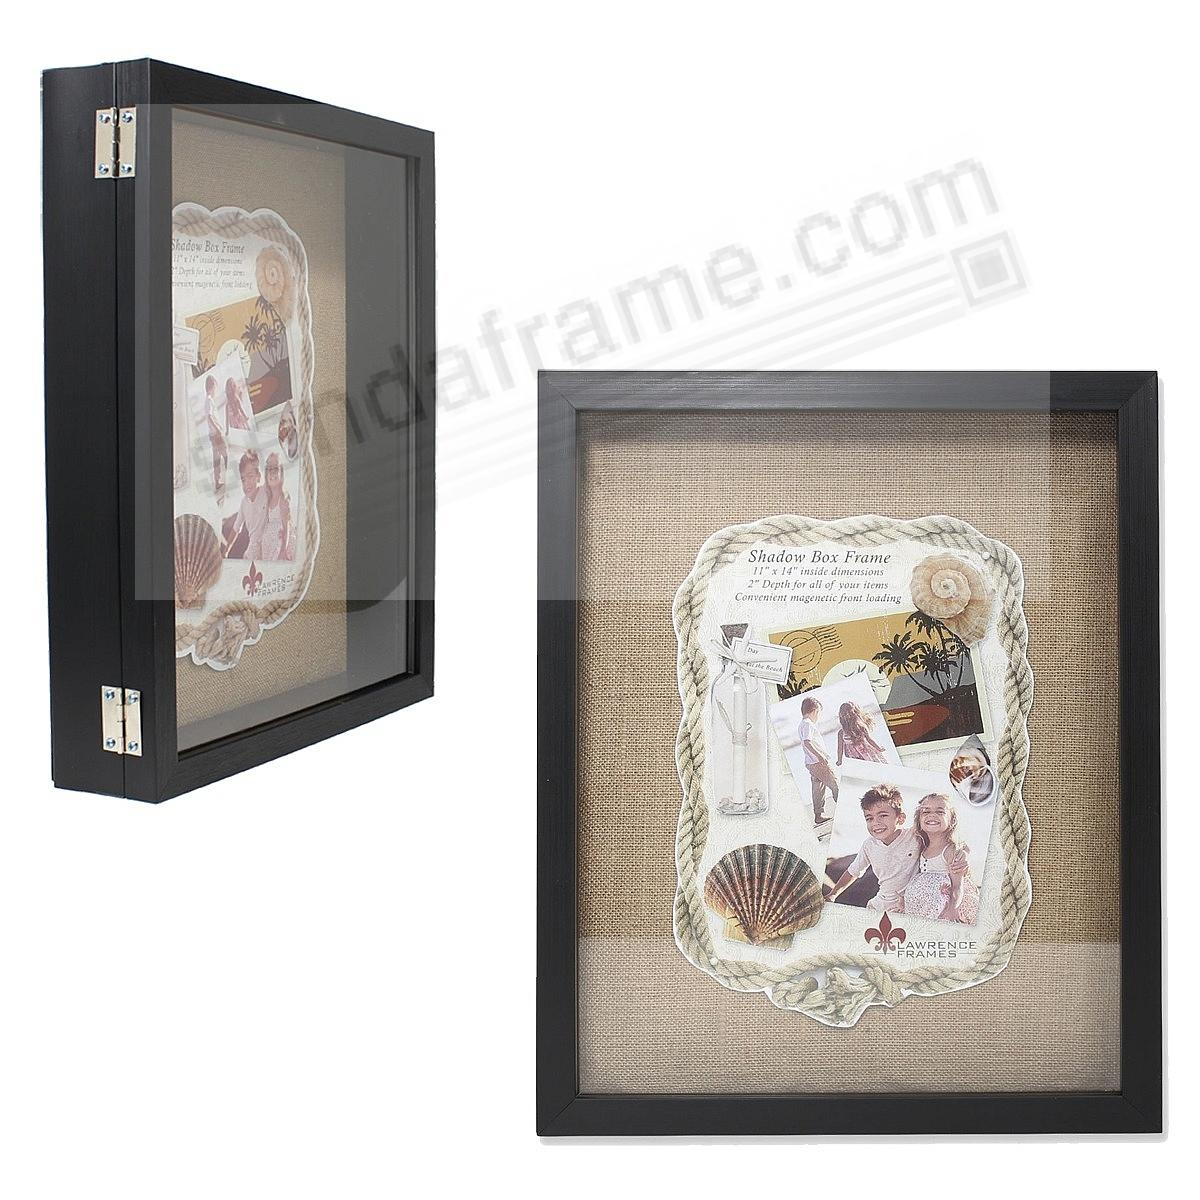 Black 2-in Depth Shadowbox w/magnetic lock front-opening 11x14 by ...